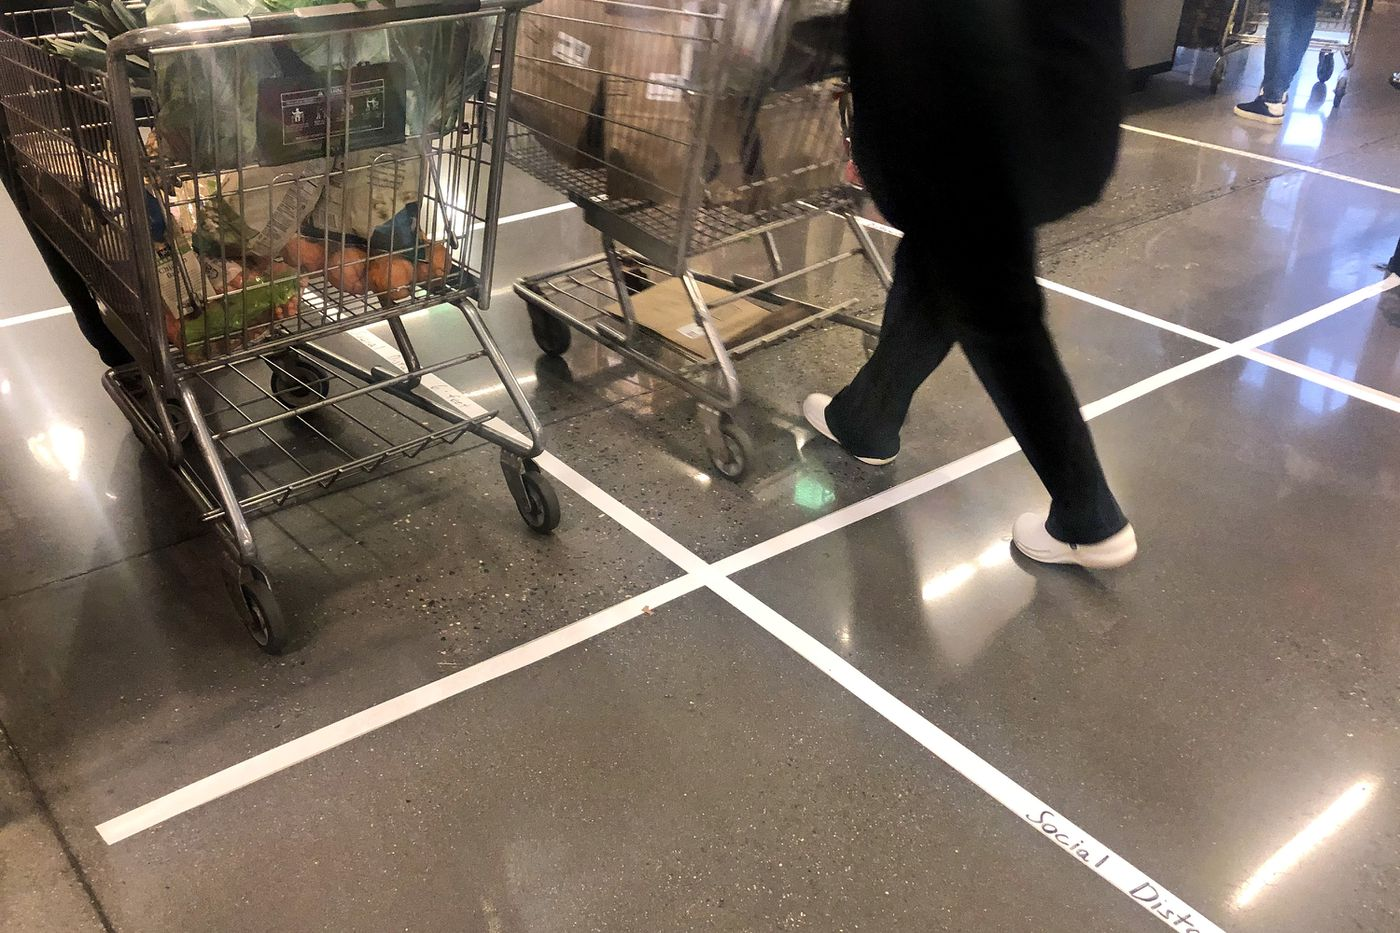 Tape on the floor reminds shoppers to stay six feet apart at the checkout counter.